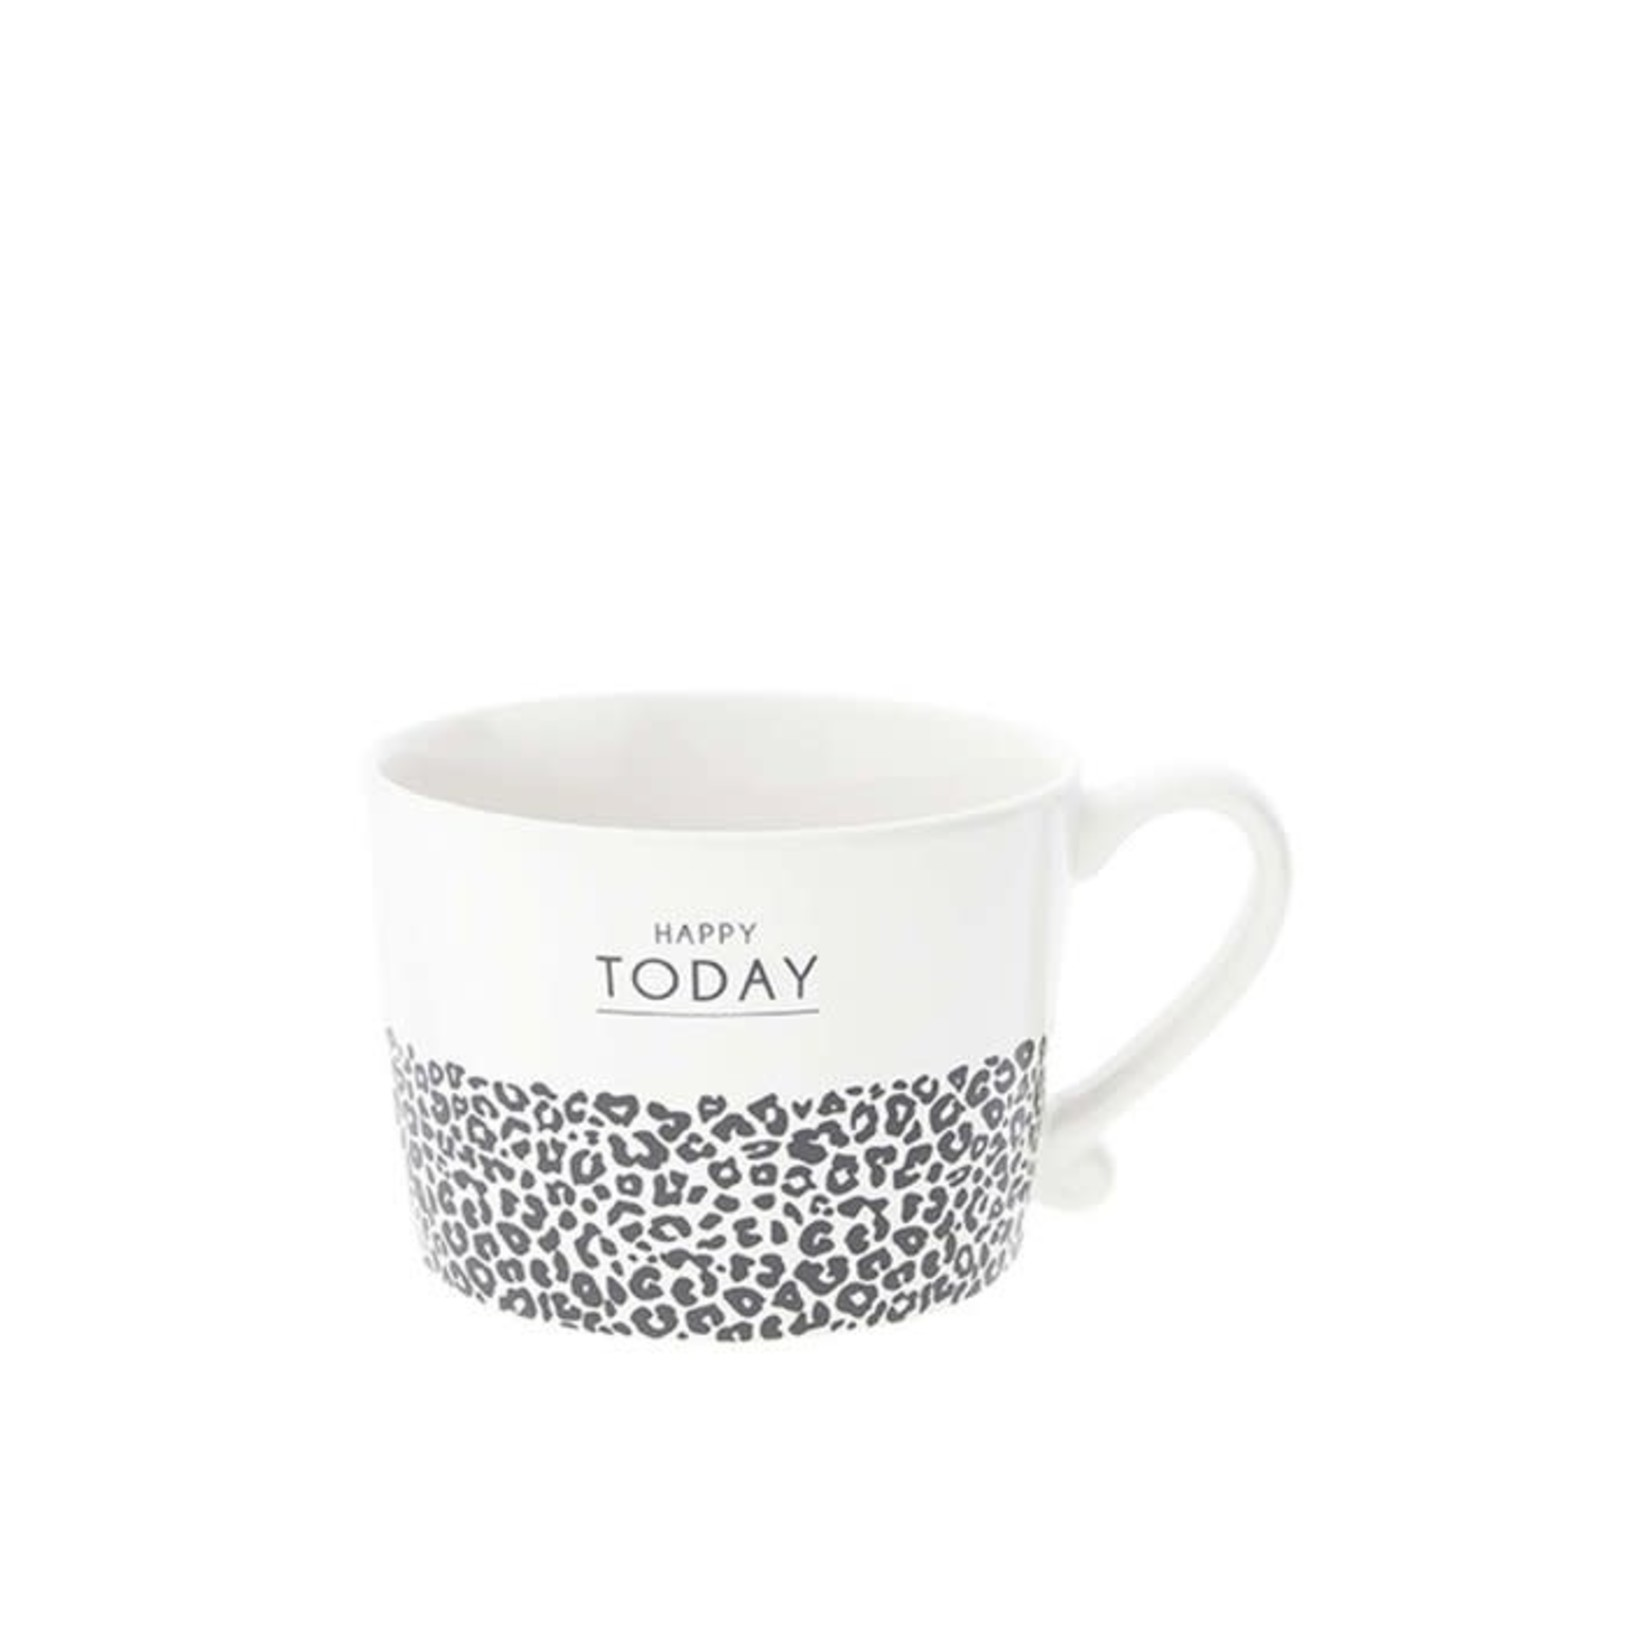 Bastion Collections Cup large White Happy Today & Leopard in Black